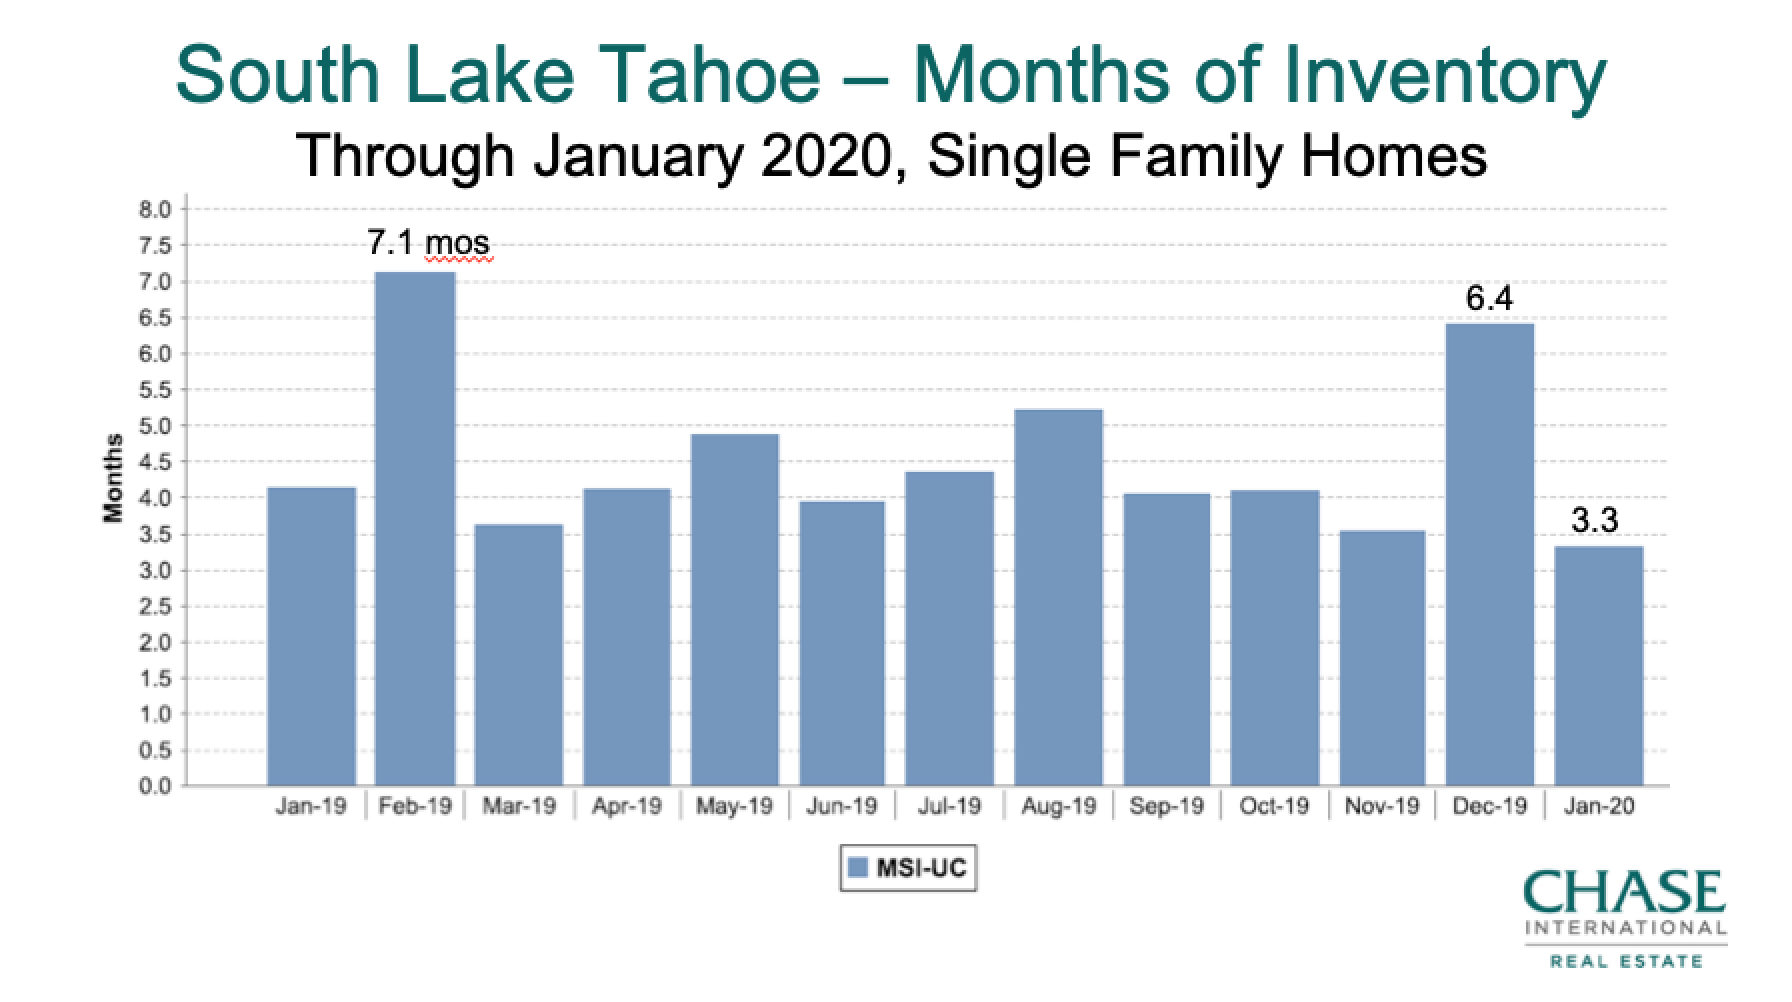 South Lake Tahoe Housing Inventory 2019 - Jan 2020